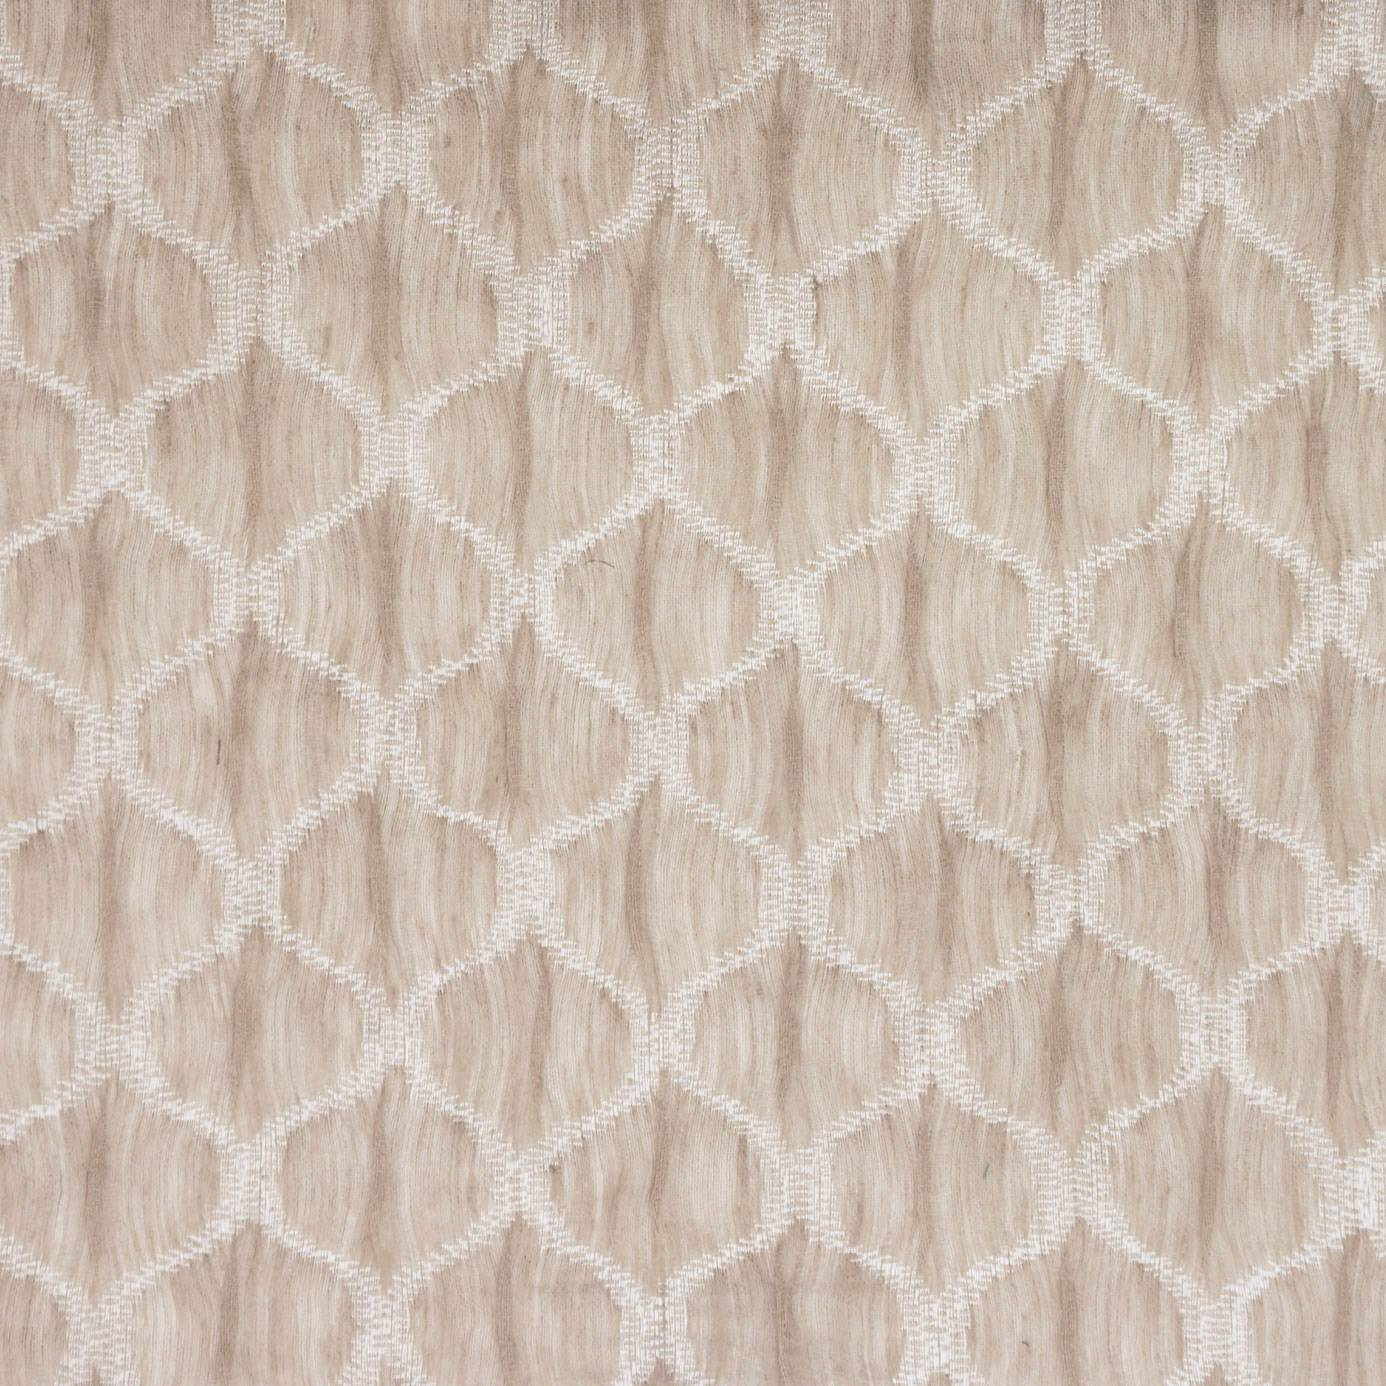 Deco fabric taupe f0574 07 clarke clarke cadoro fabrics collection - Deco taupe ...